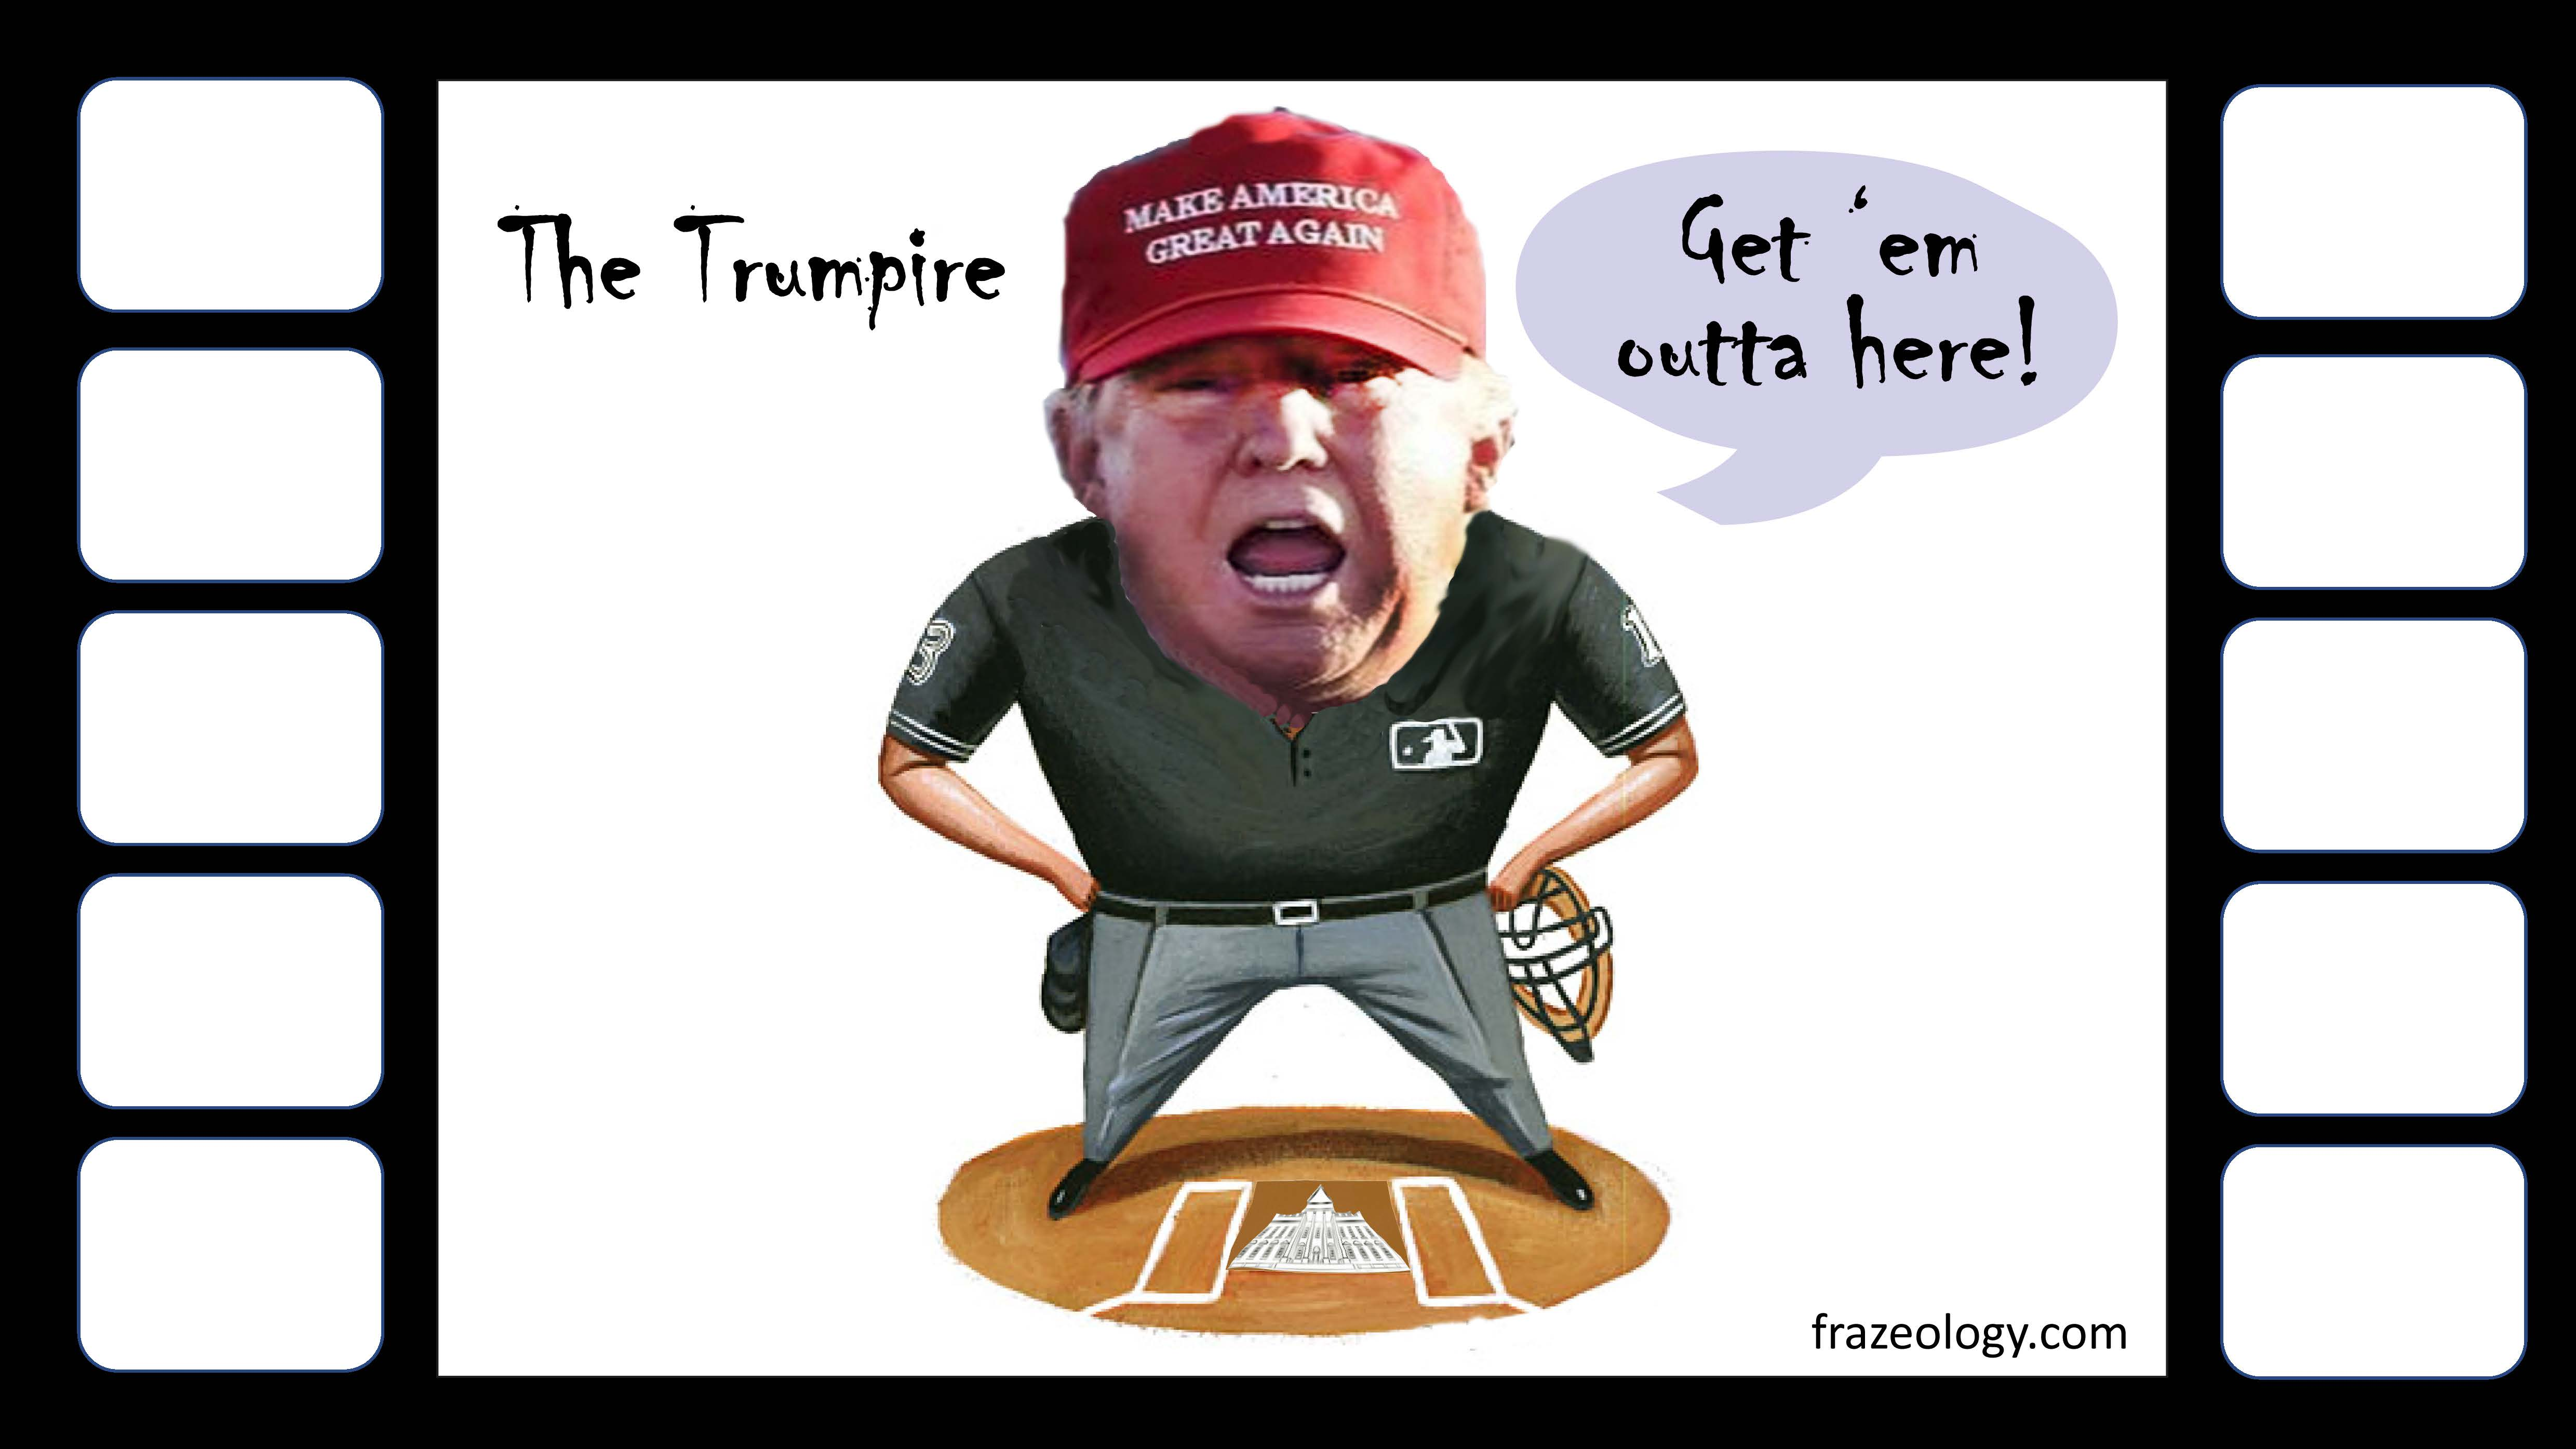 The Trumpire: in the game of life, Donald Trump aspires to become the ultimately authority in everything, with even the power to throw you out of the game.